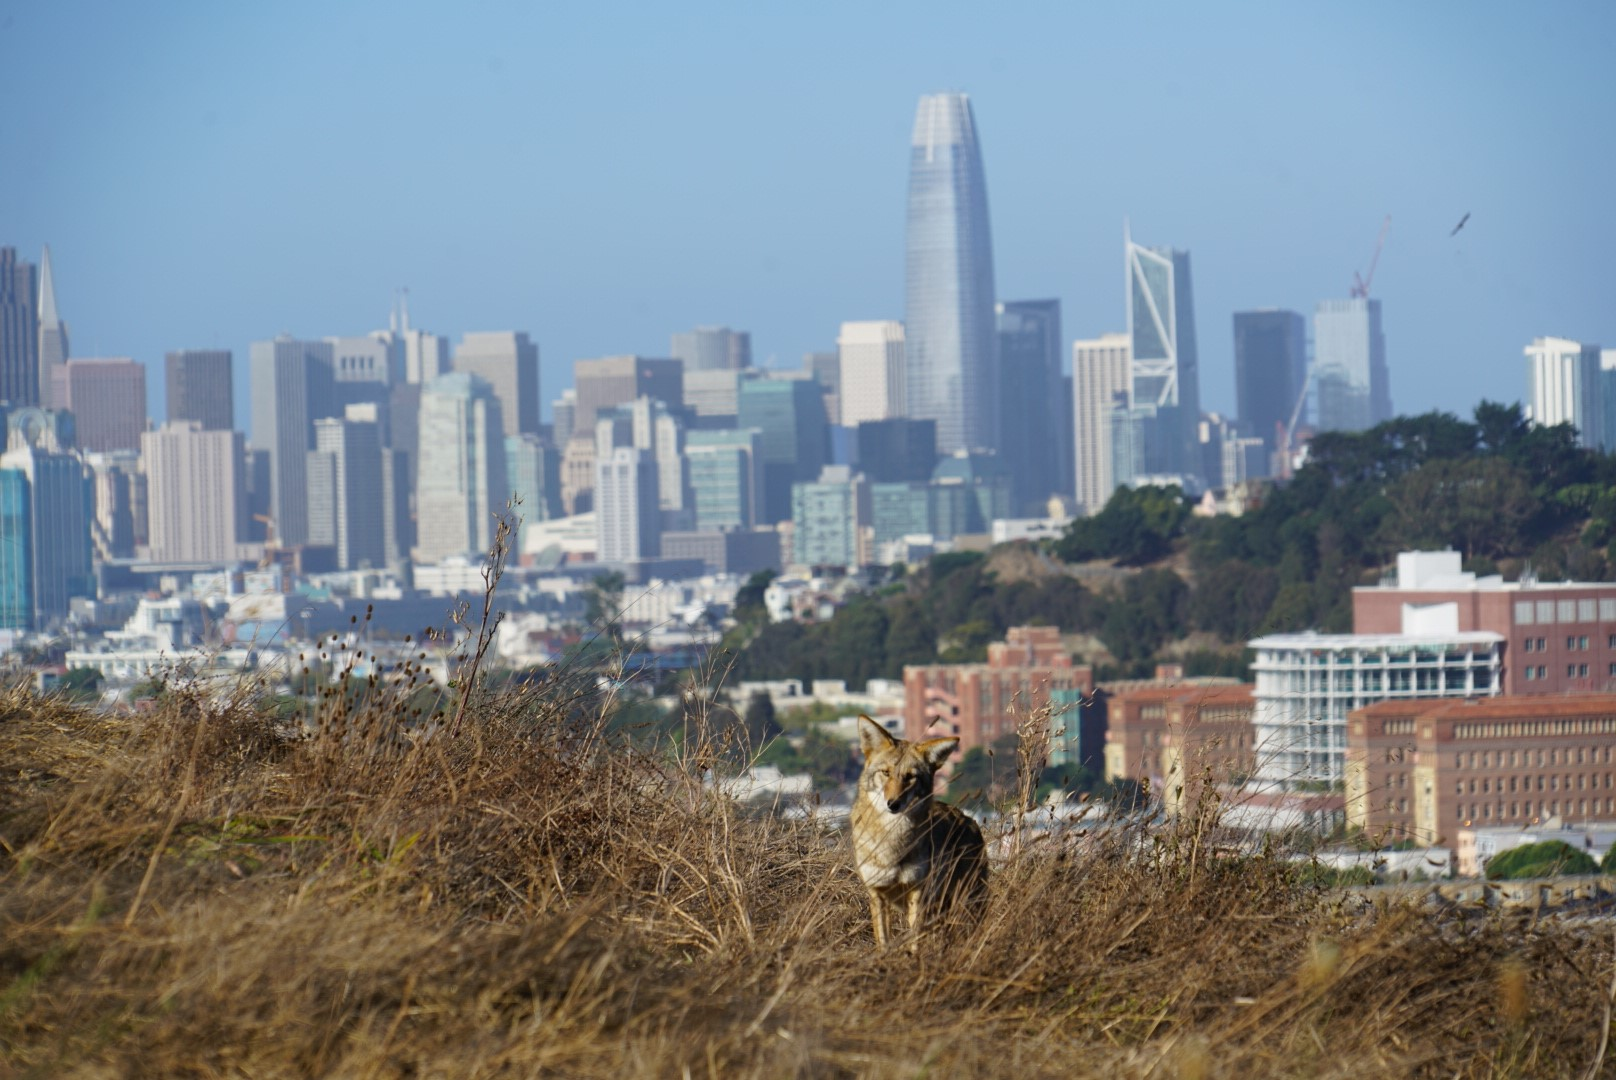 Spotted: Coyotes on Bernal Heights Hill in San Francisco